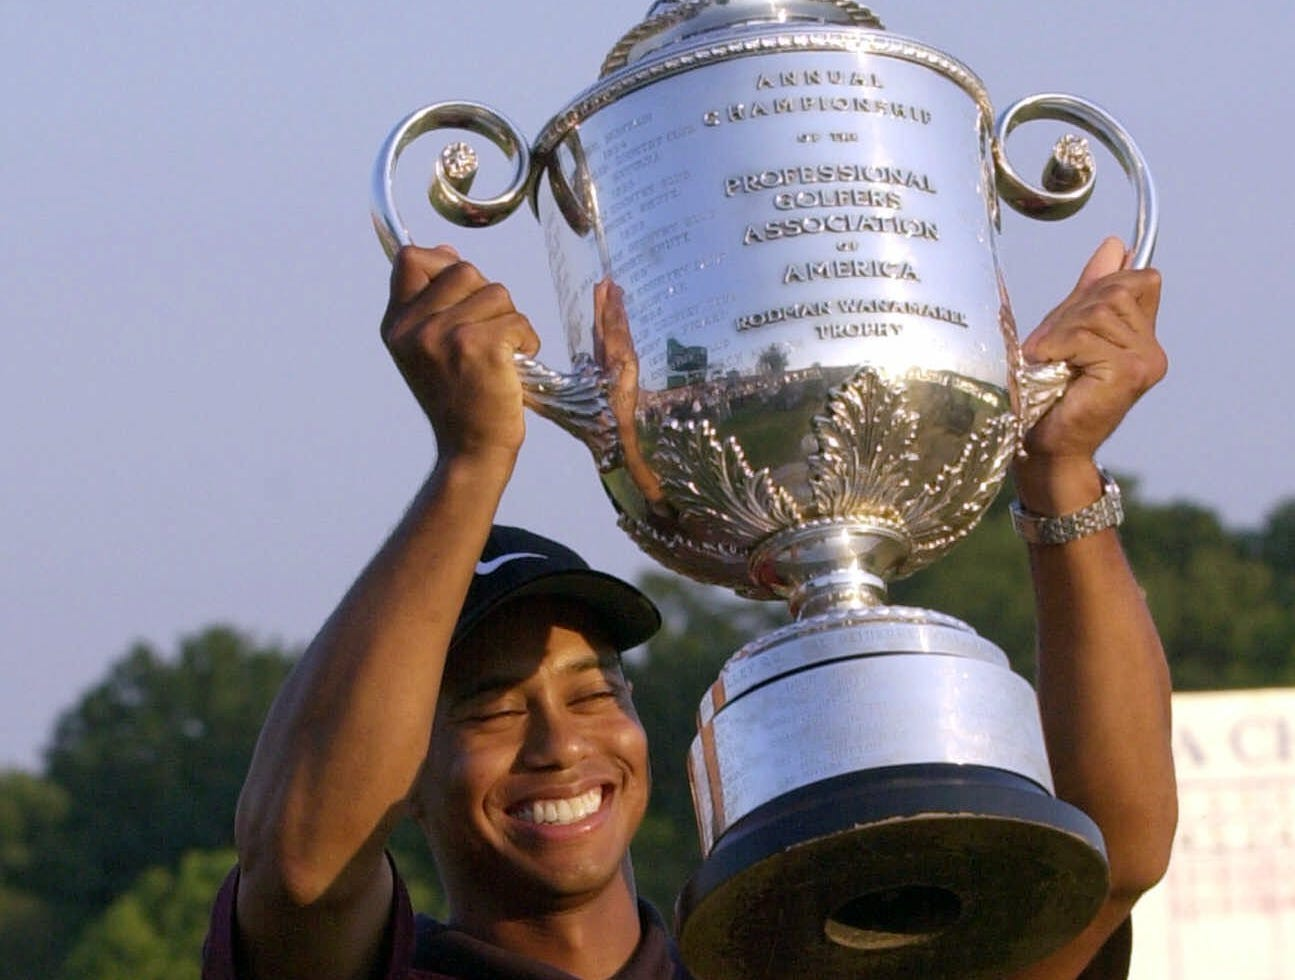 Tiger Woods holds the Wannamaker Trophy after winning the PGA Championship at the Valhalla Golf Club in Louisville, Ky., Sunday, Aug. 20, 2000